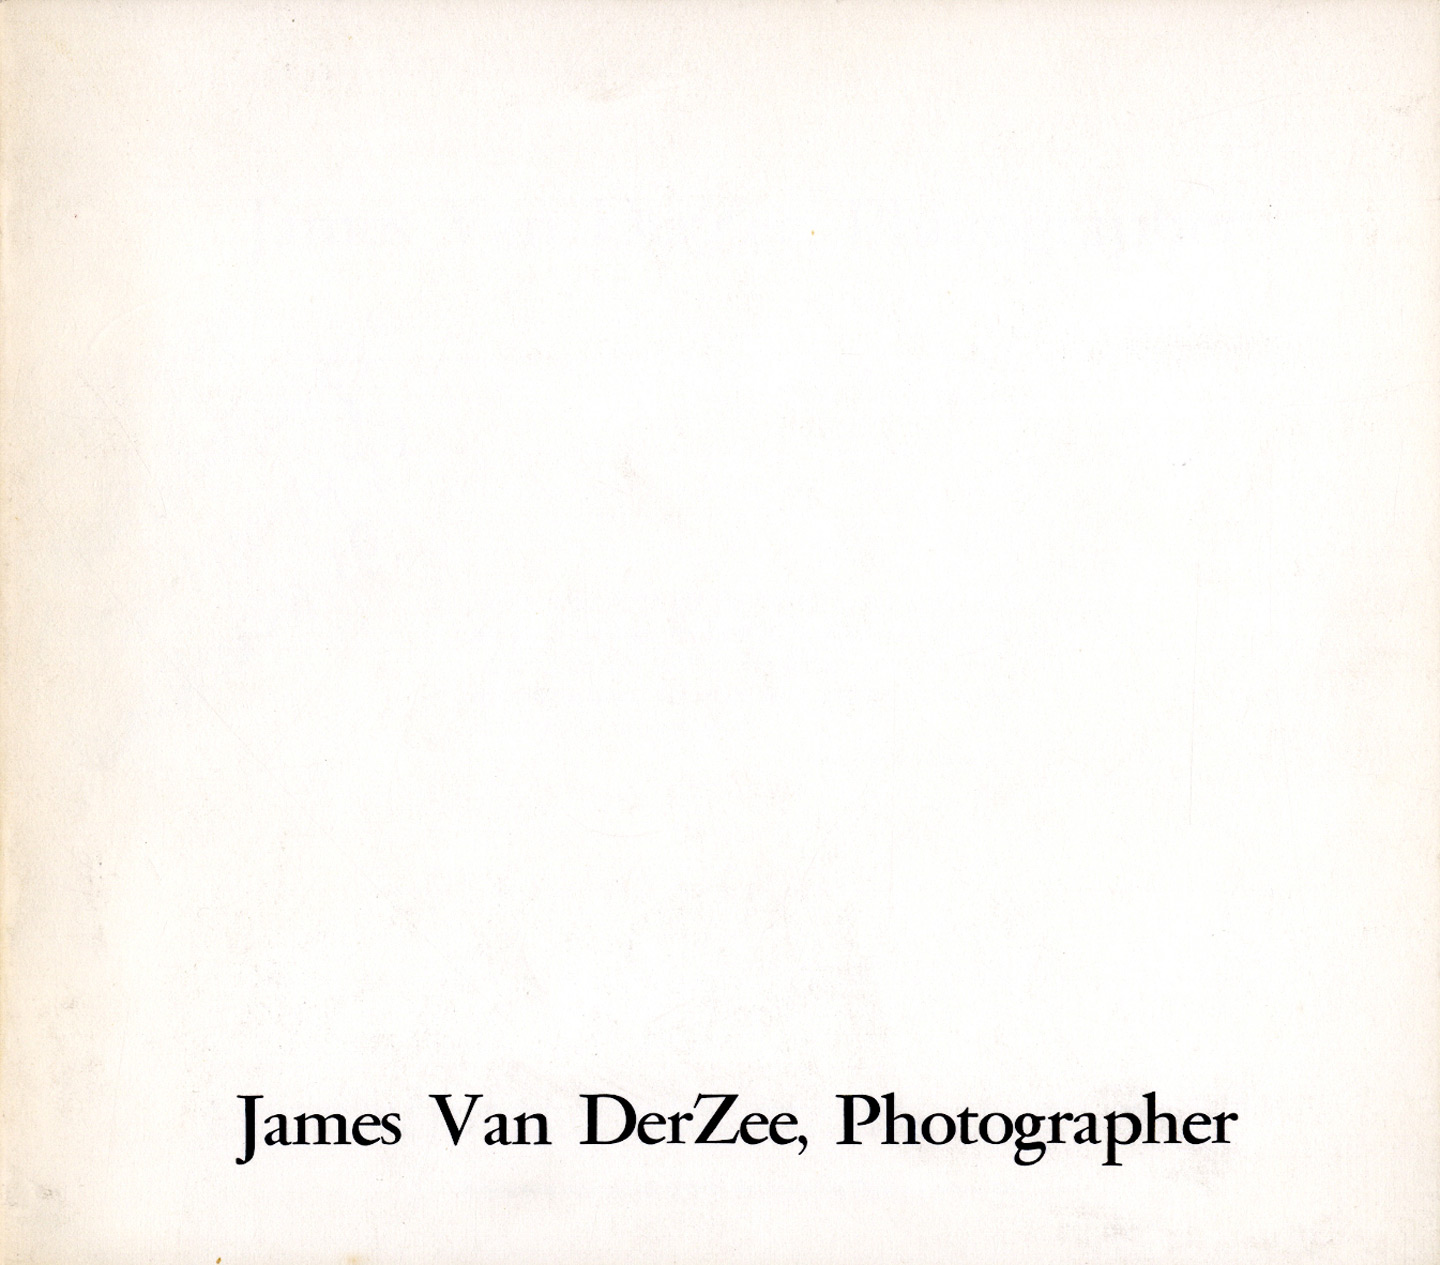 James Van DerZee, Photographer [SIGNED]